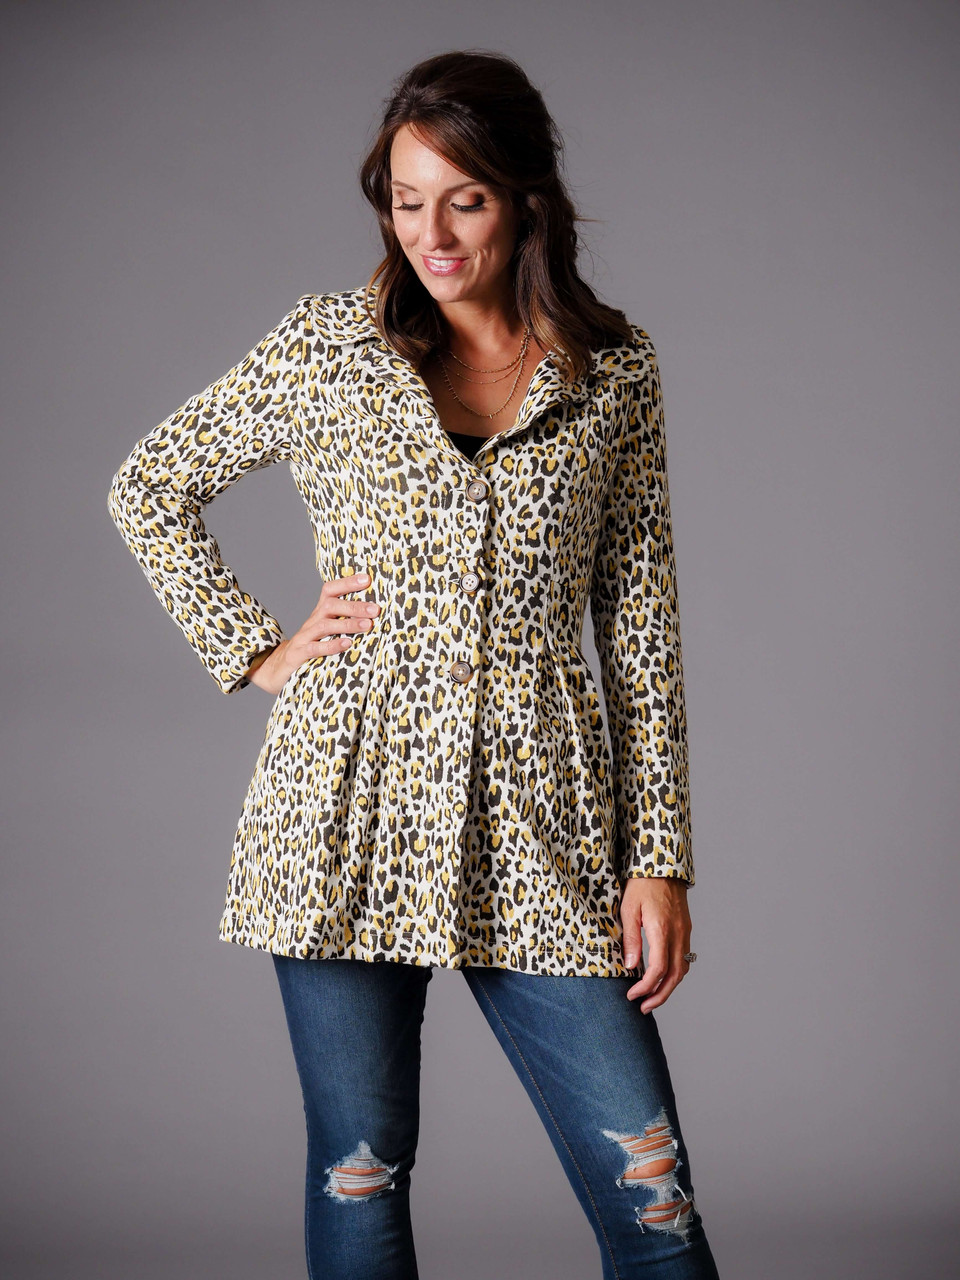 olive green and yellow leopard print jacket